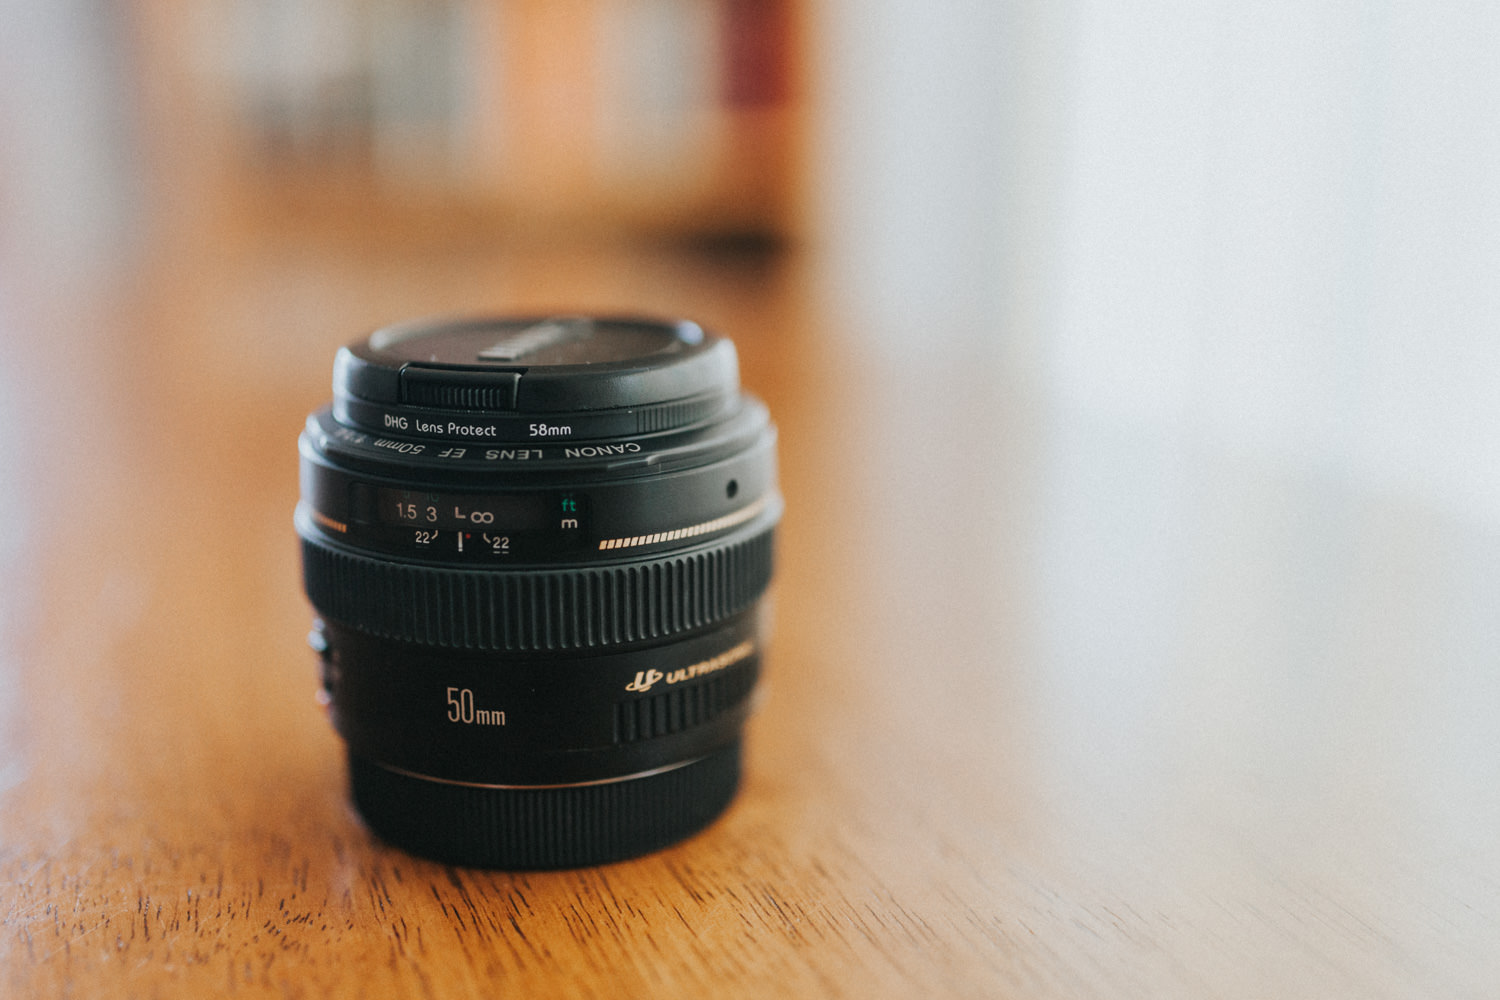 Canon 50mm f/1.4 Lens